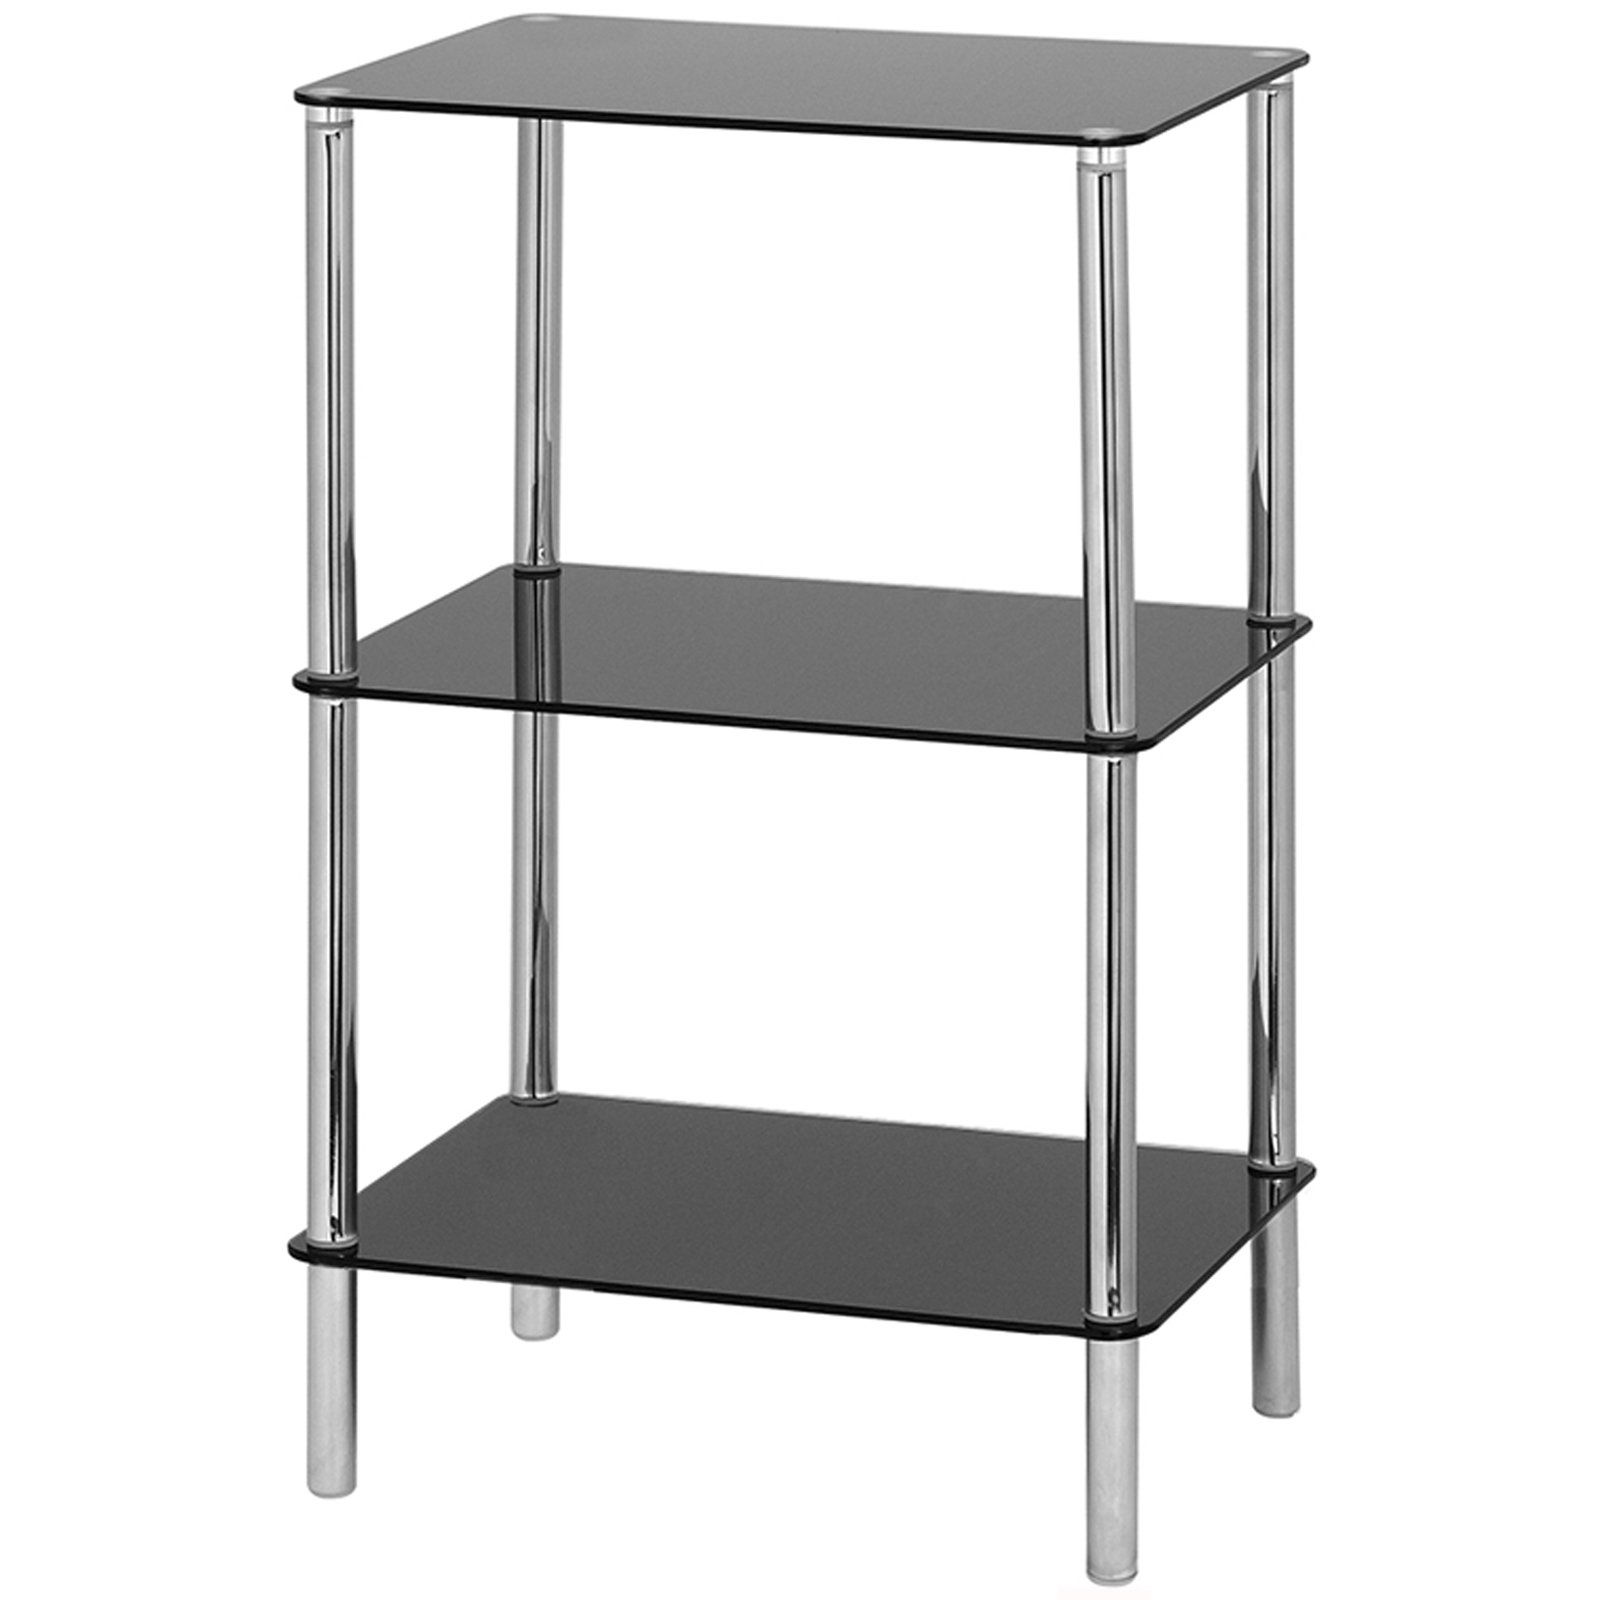 Hartleys Glass Side/End Table - 3 Tier - Black